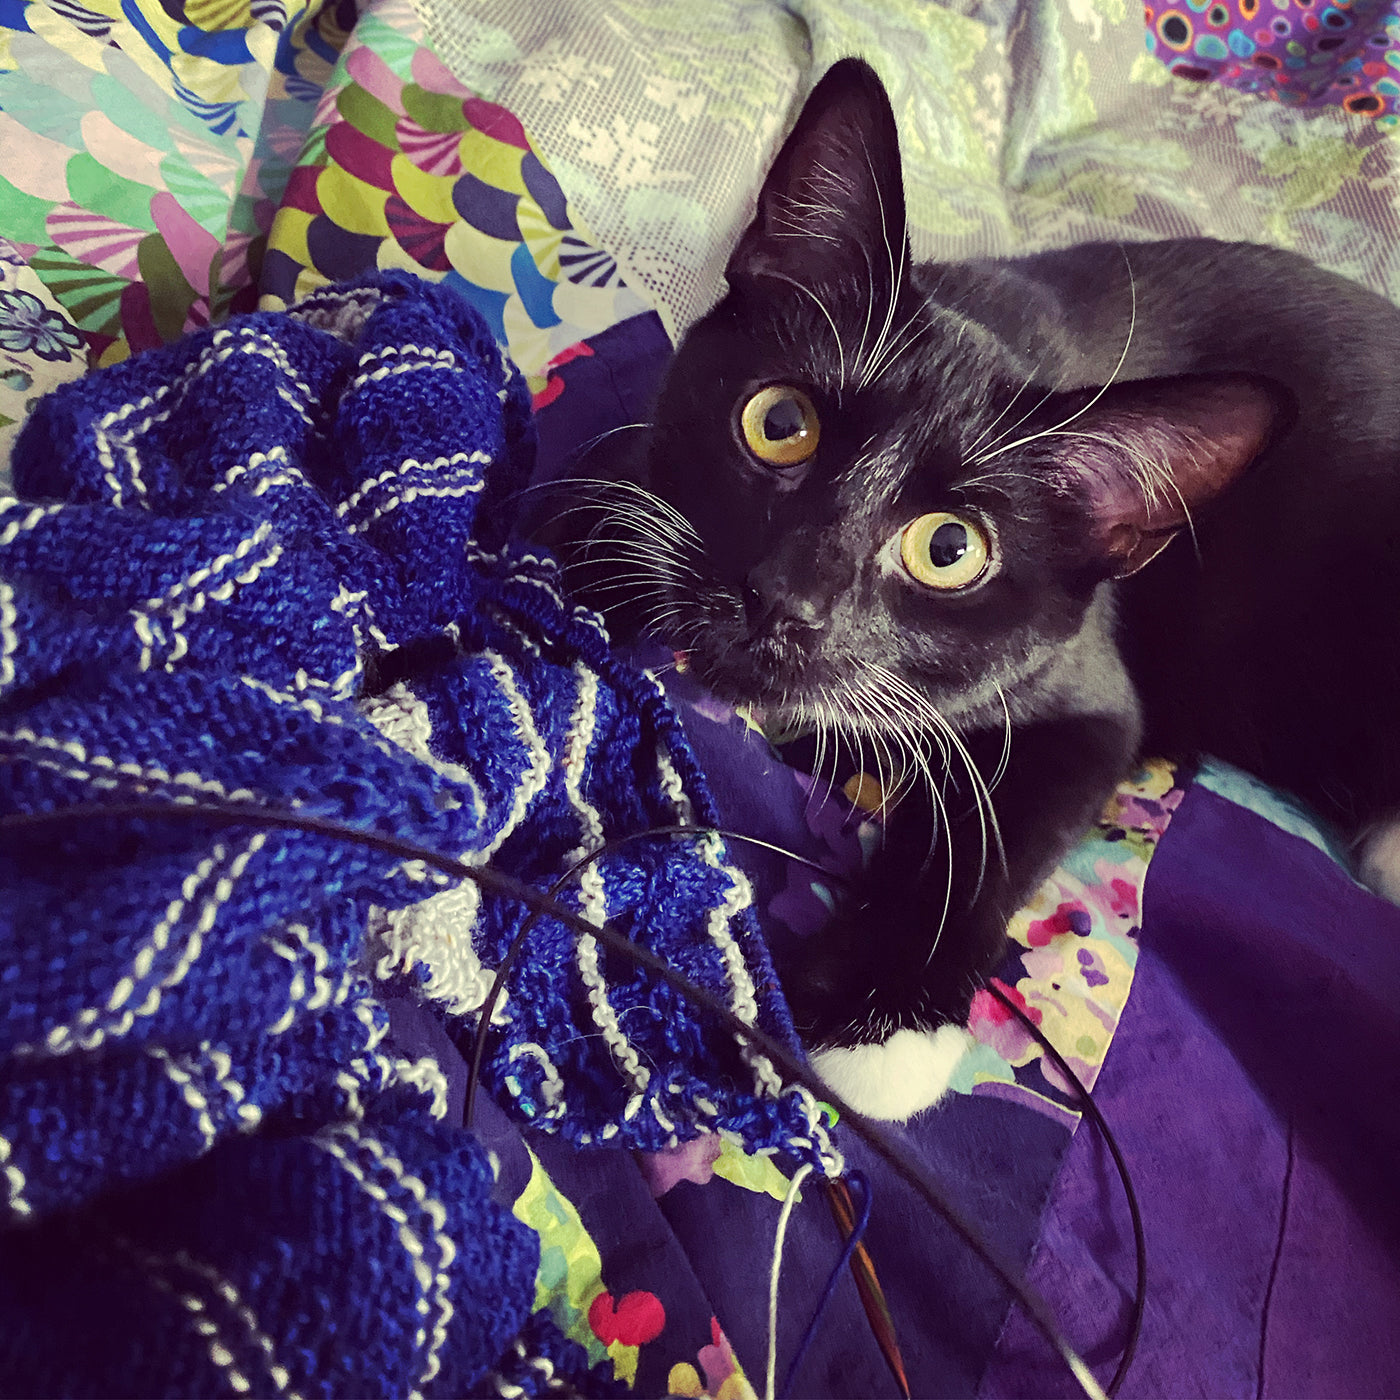 Cat with knitting